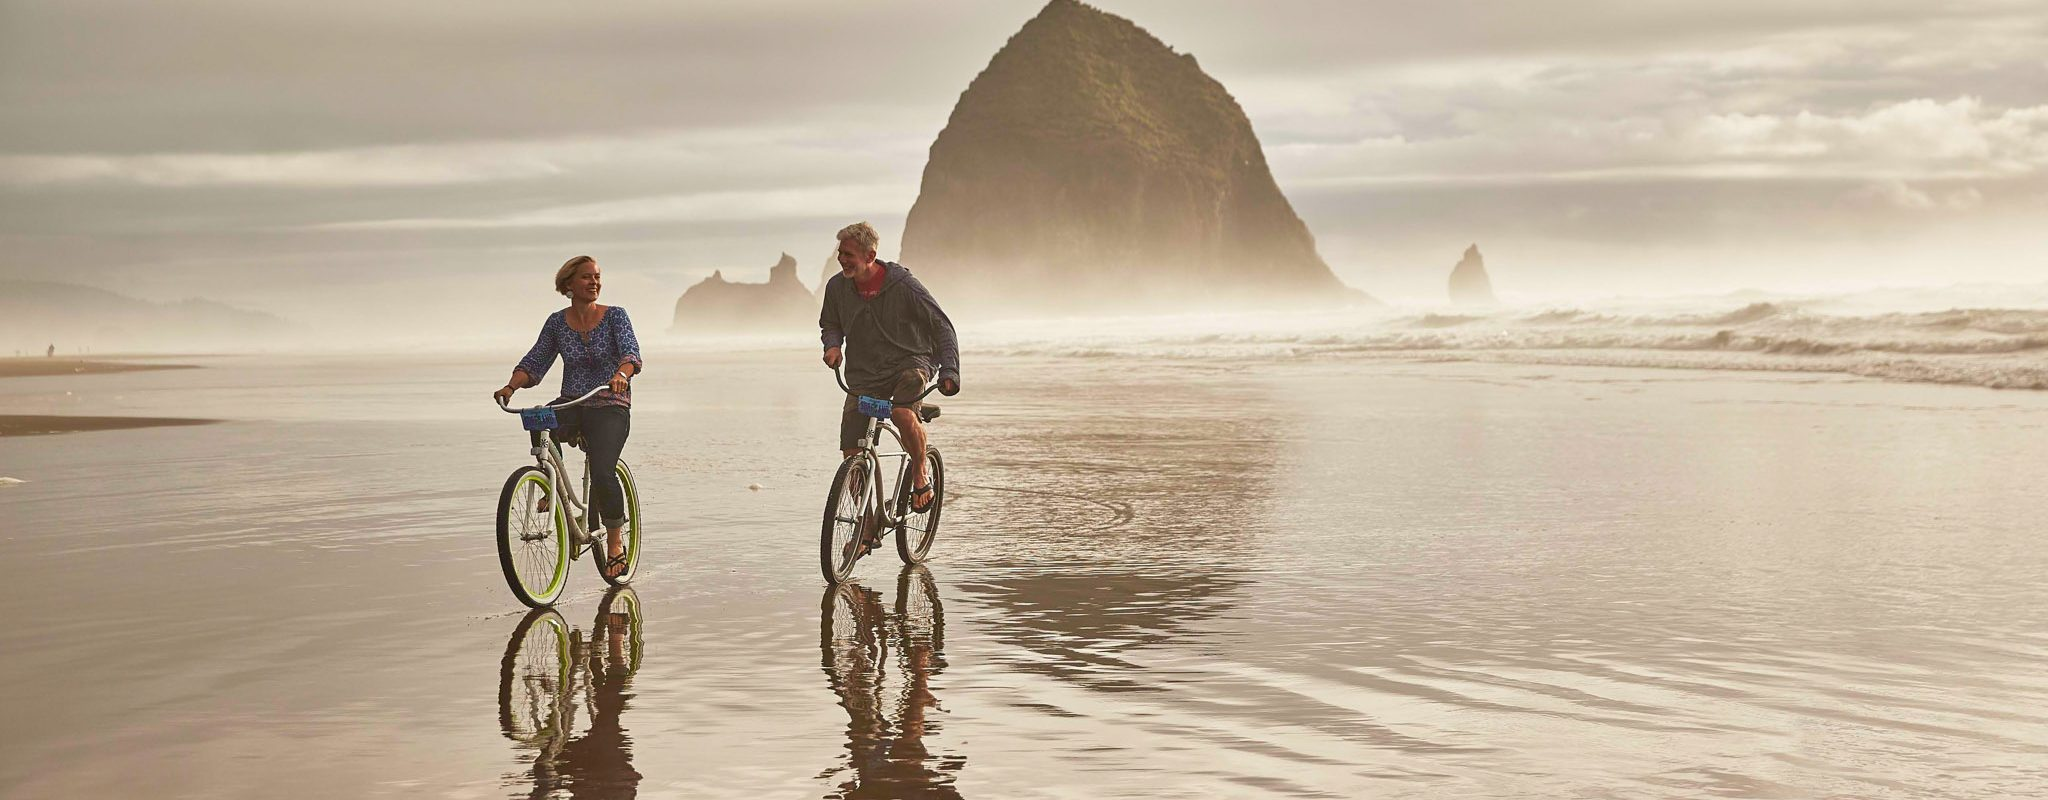 Ride bikes on the Oregon coast.